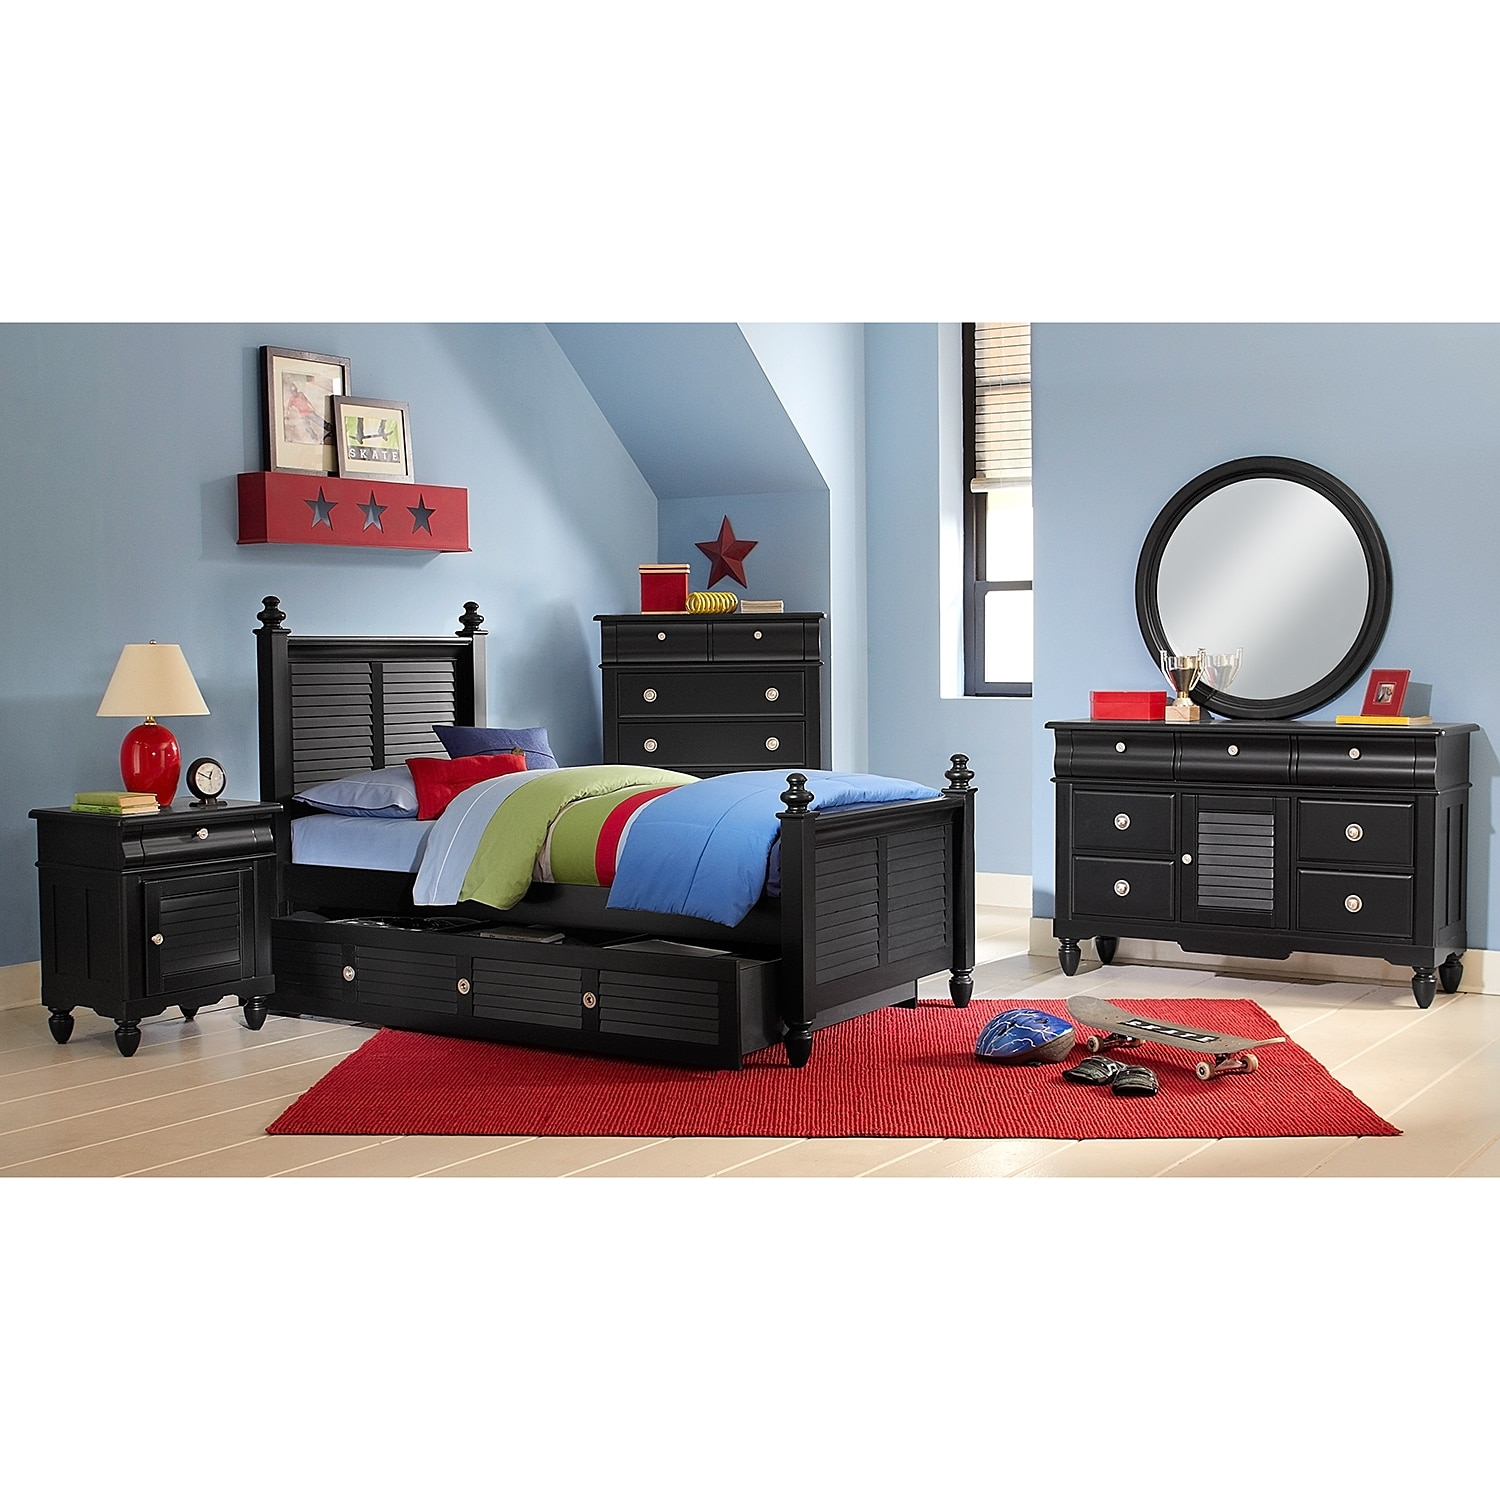 Seaside Black Twin Bed With Trundle American Signature